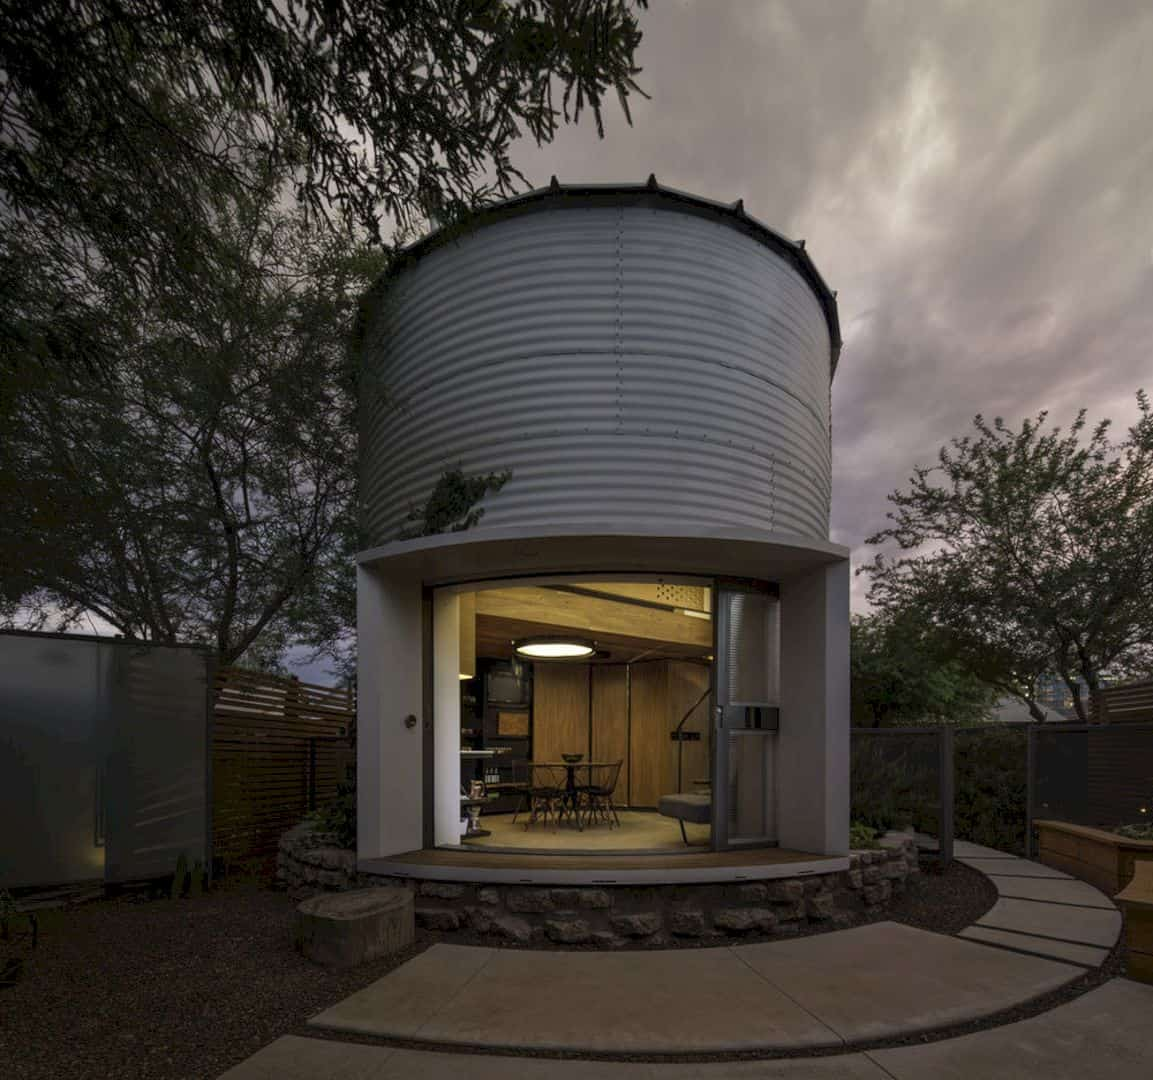 Silo House: A Simple House with An Efficient Construction